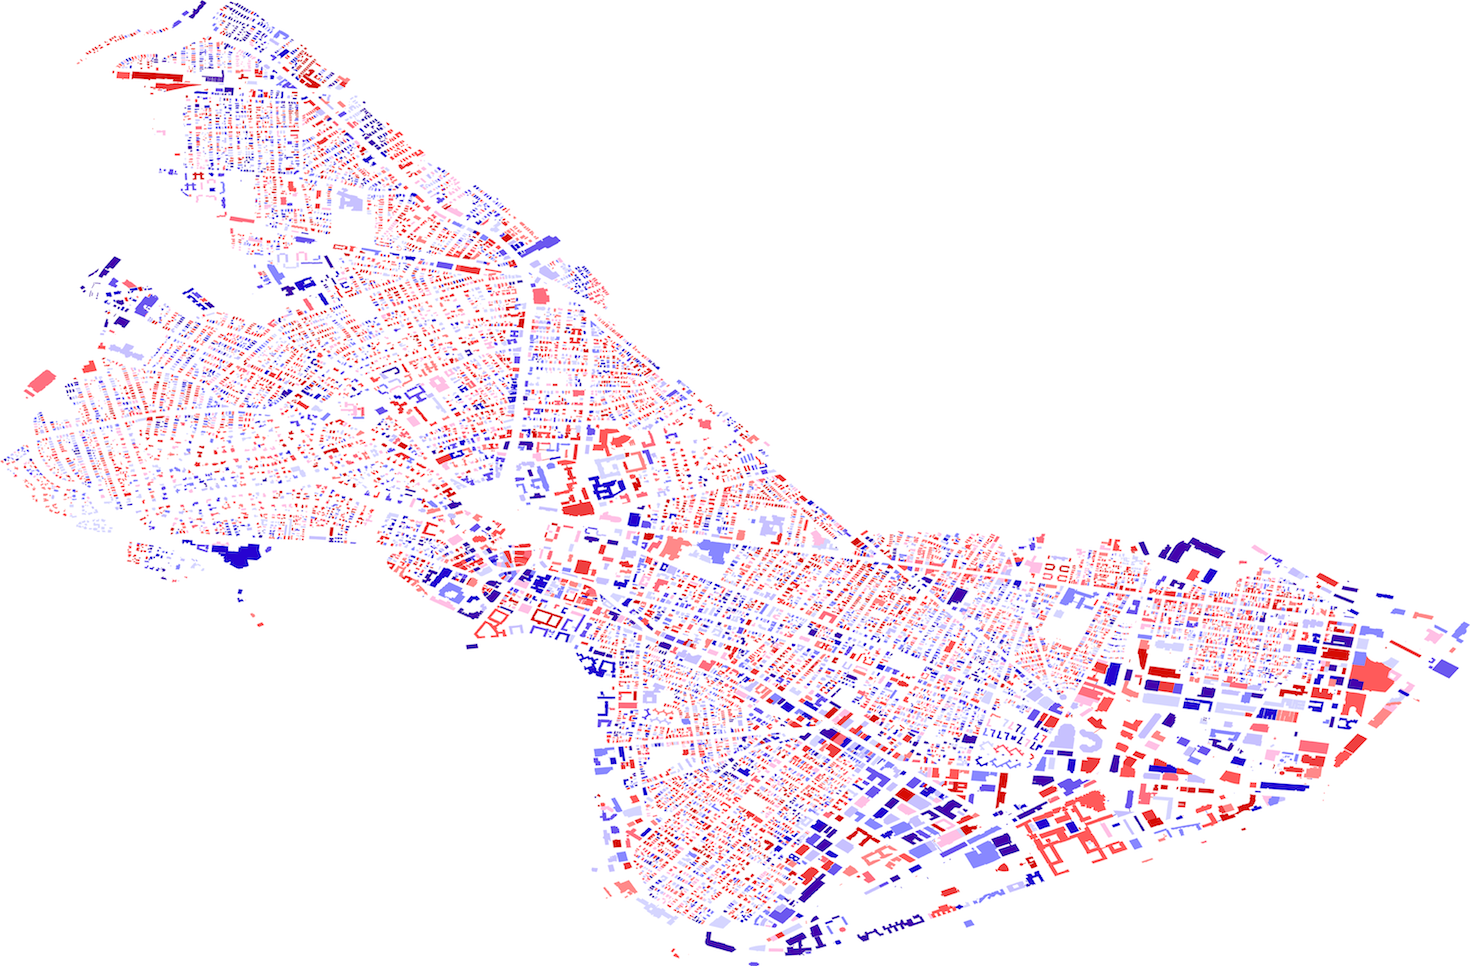 A map of Cambridge, MA, made through thermal-imaging of each building.